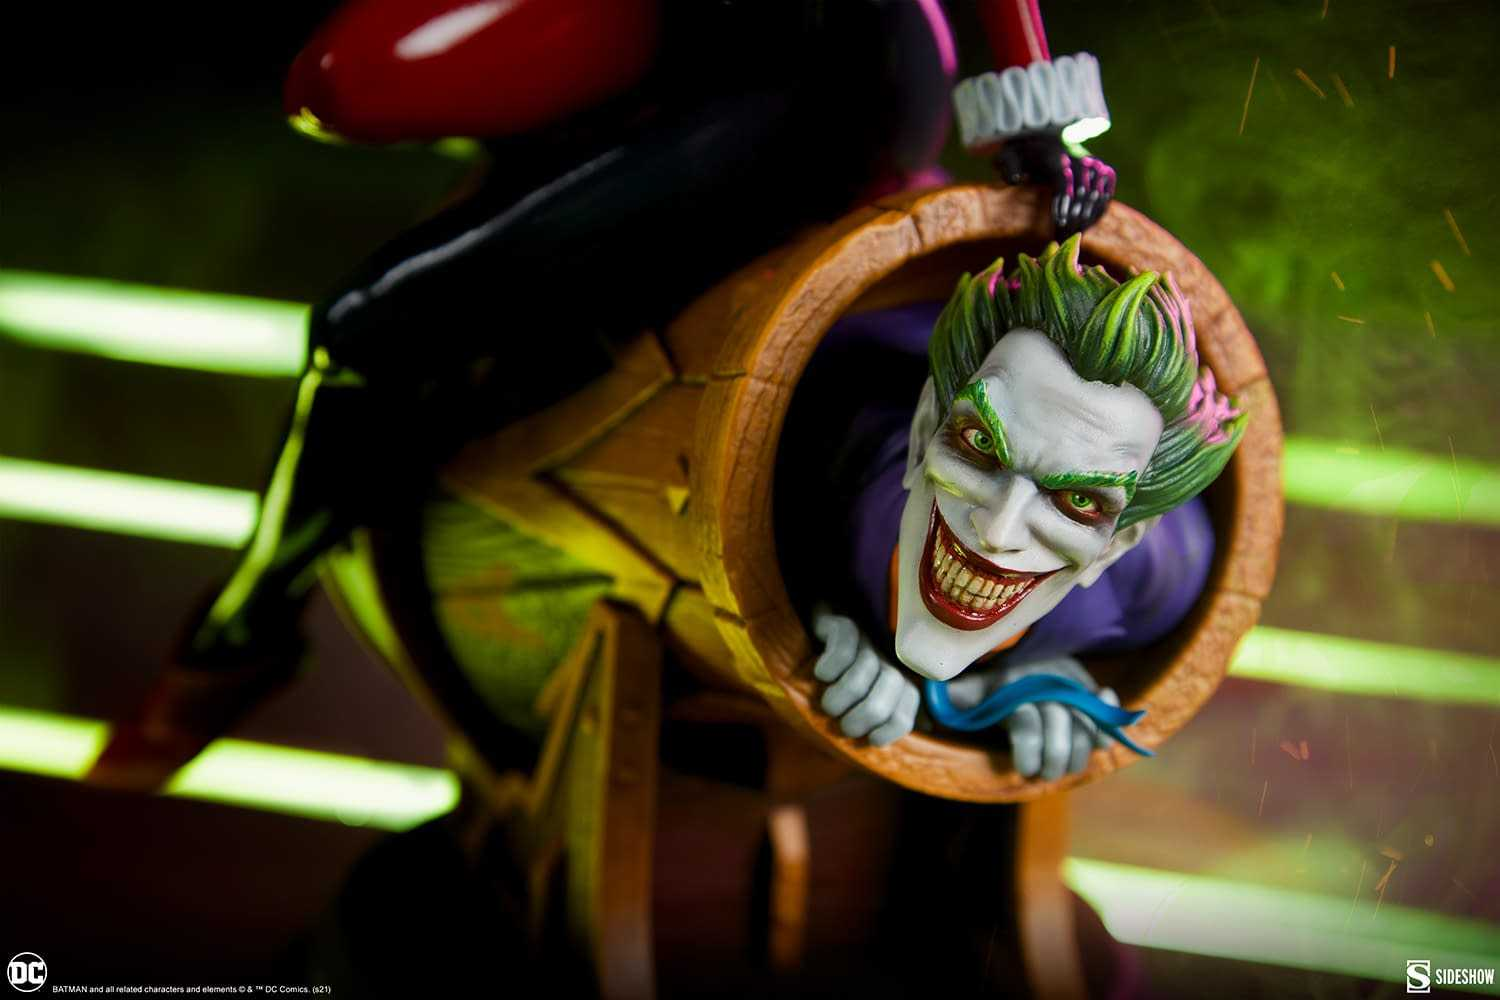 Joker and Harley Quinn: here is the new incredible diorama!